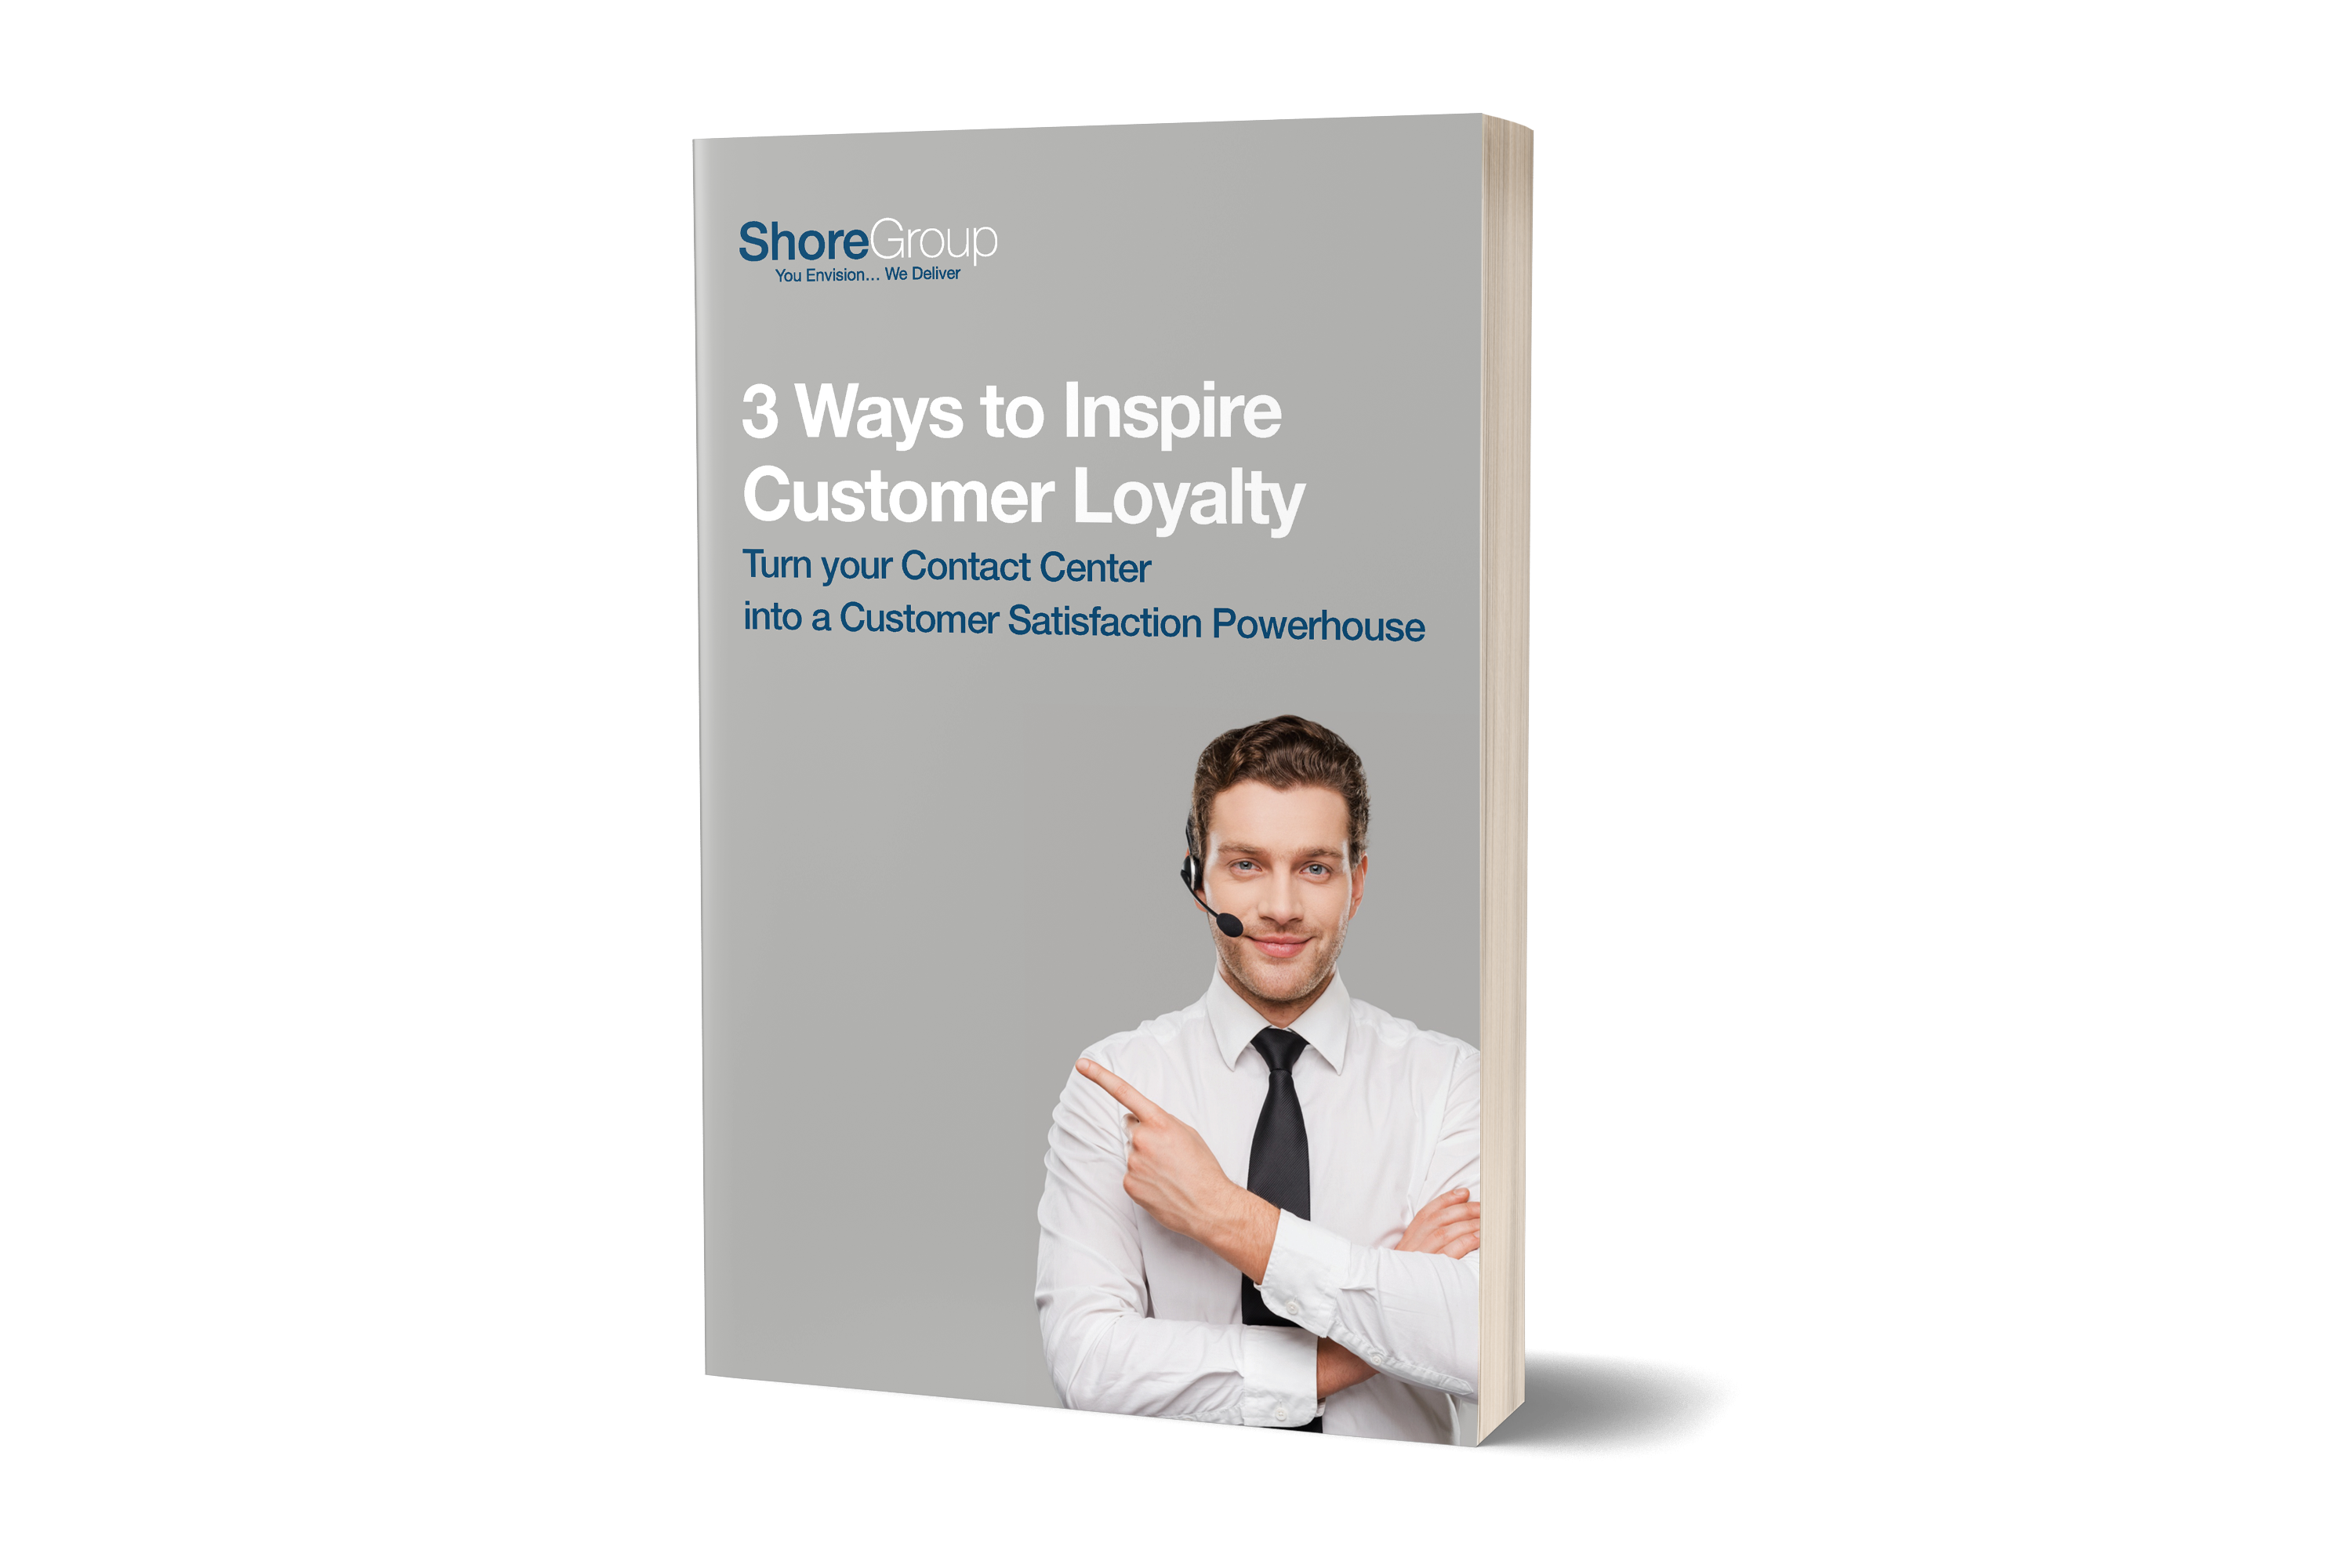 3_Ways_to_Inspire_Customer_Loyalty_Guide_3D_Cover.png